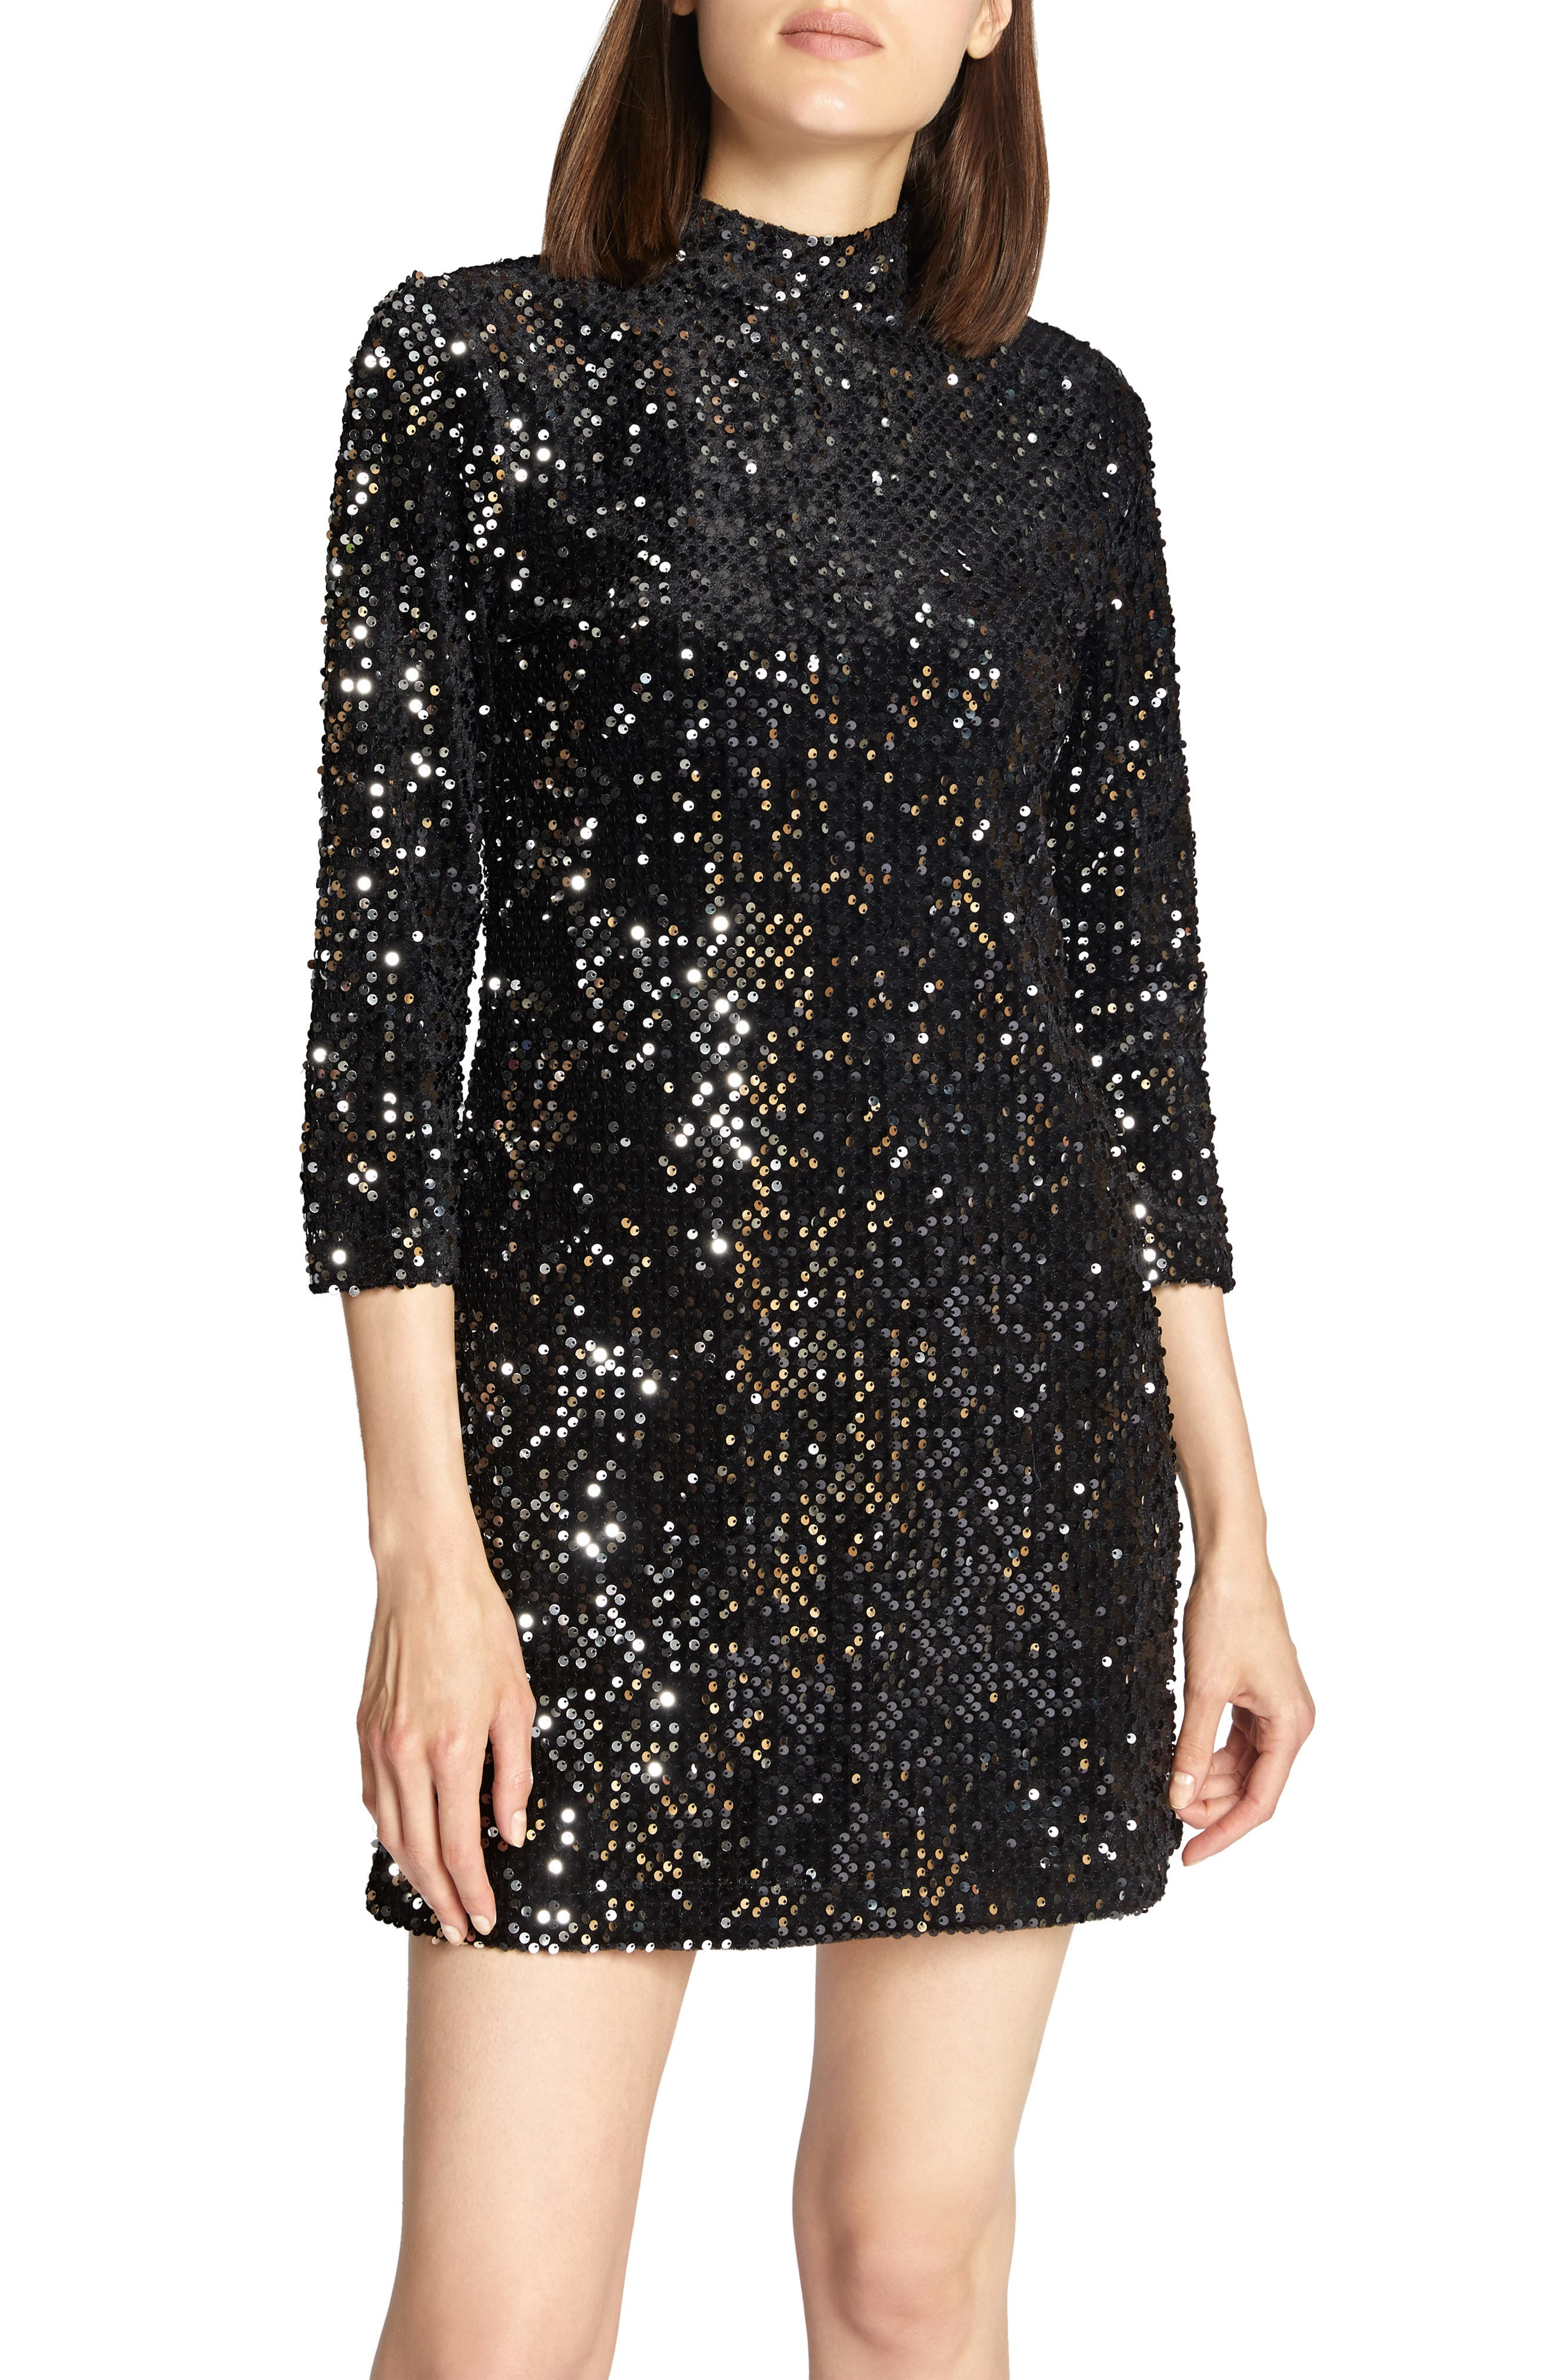 Keep Your Heads Up Sequin Shift Dress,                             Main thumbnail 1, color,                             BLACK/ SILVER